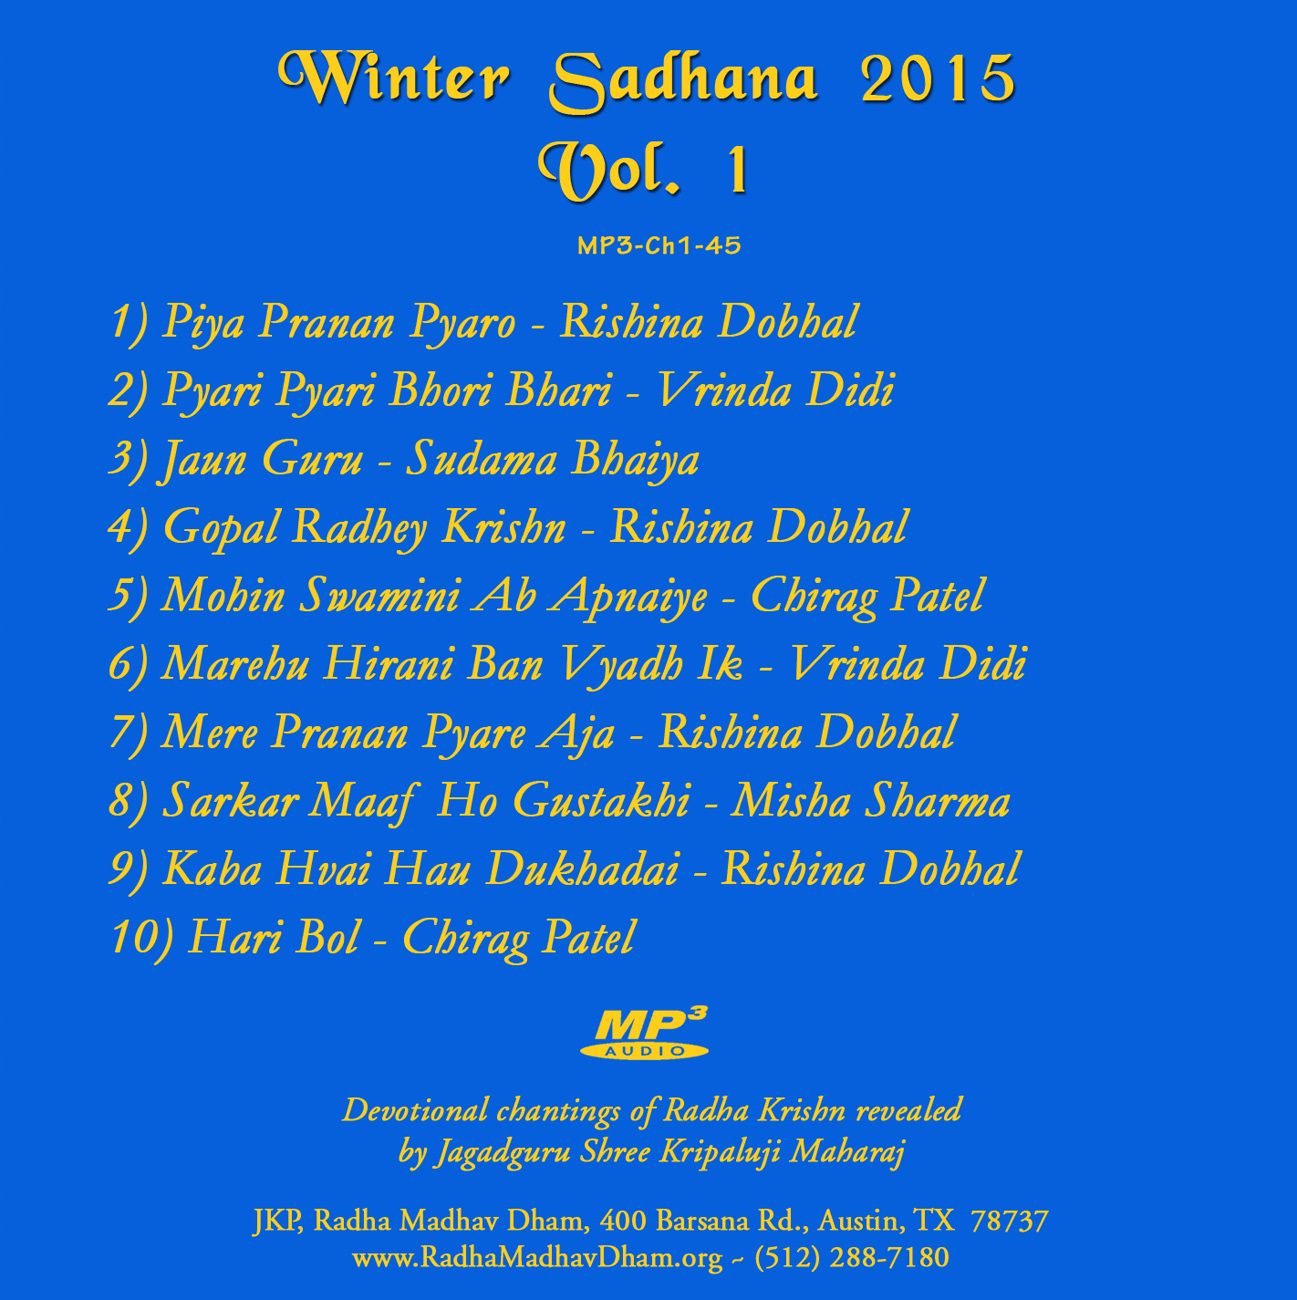 Details for MP3-Ch1-45-Winter Sadhana 2016 Vol 1